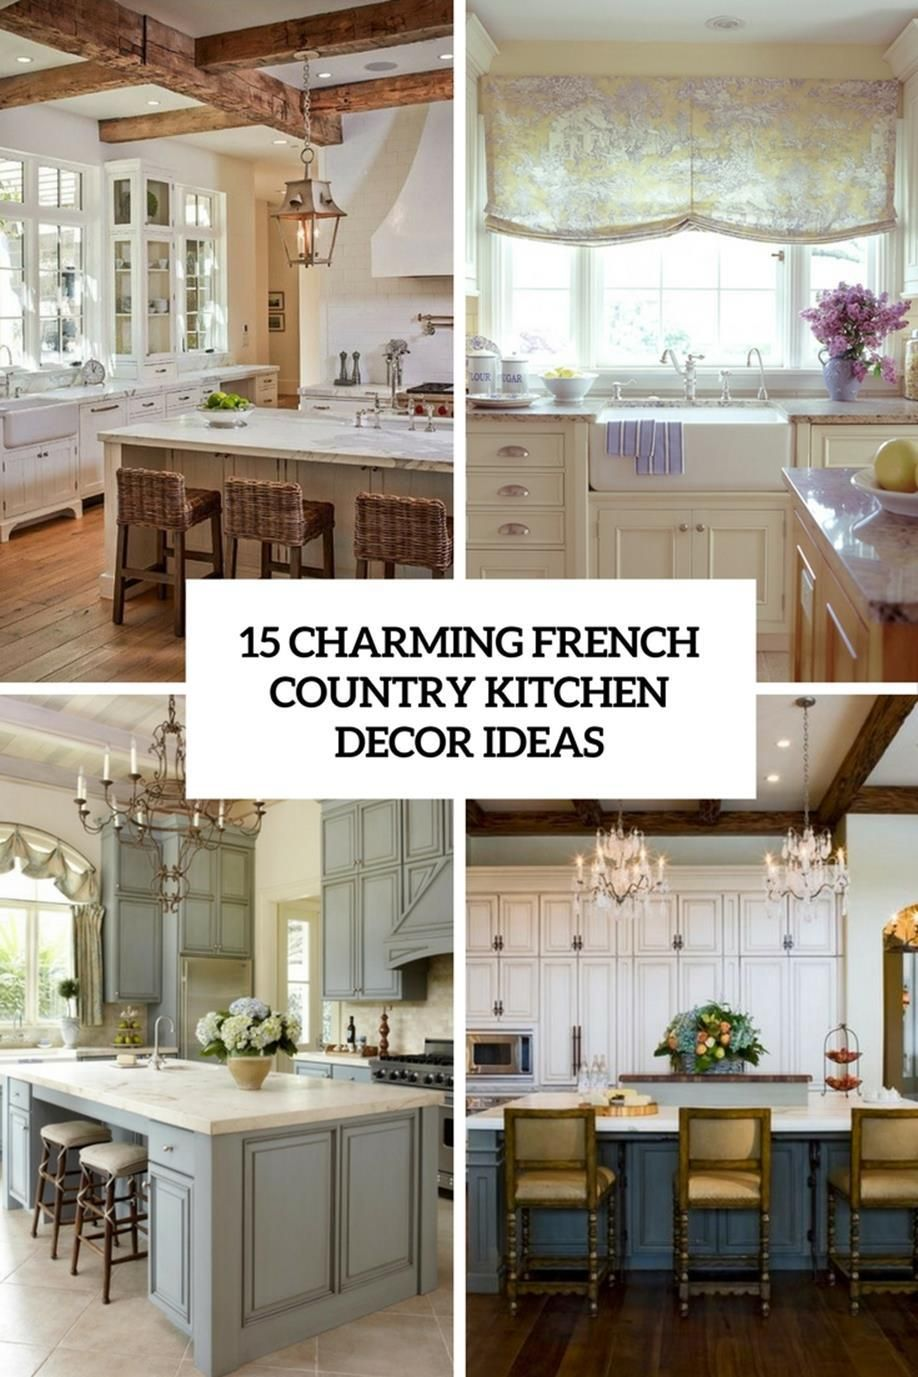 20 Perfect Country Kitchen Decorating Ideas